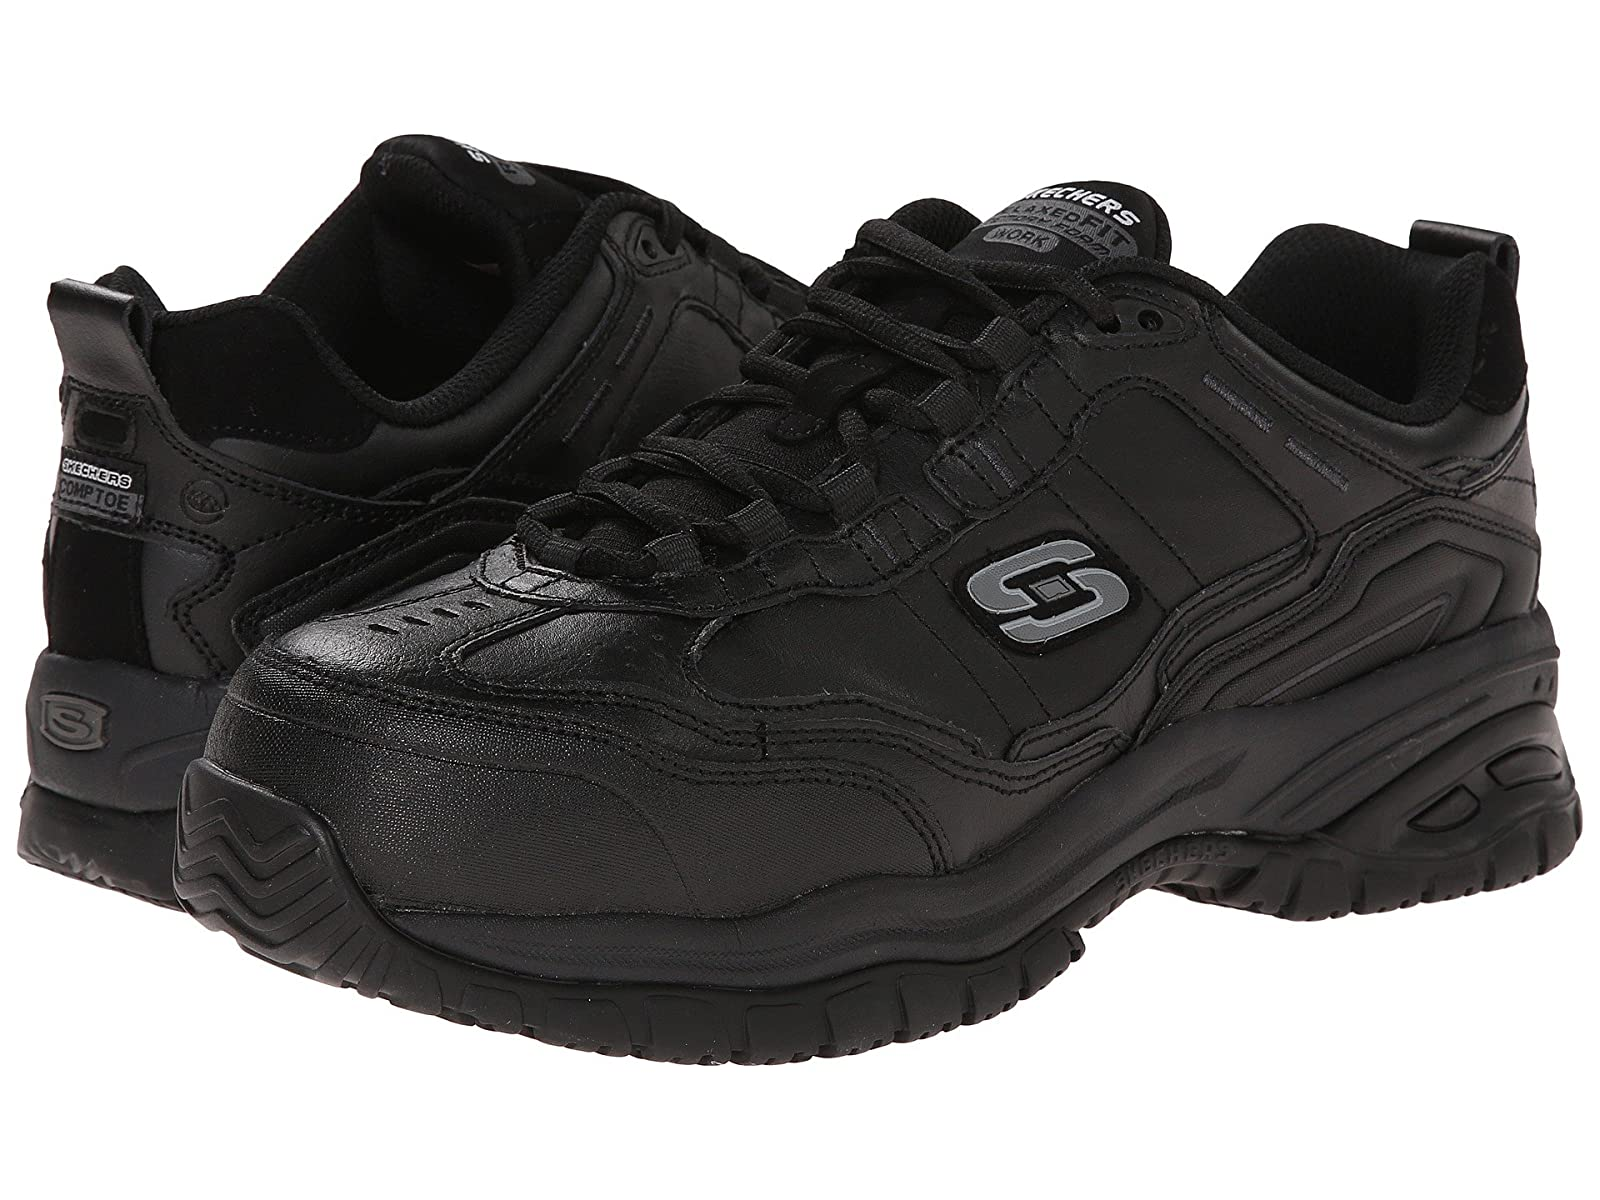 SKECHERS Work Soft Stride - ChathamCheap and distinctive eye-catching shoes